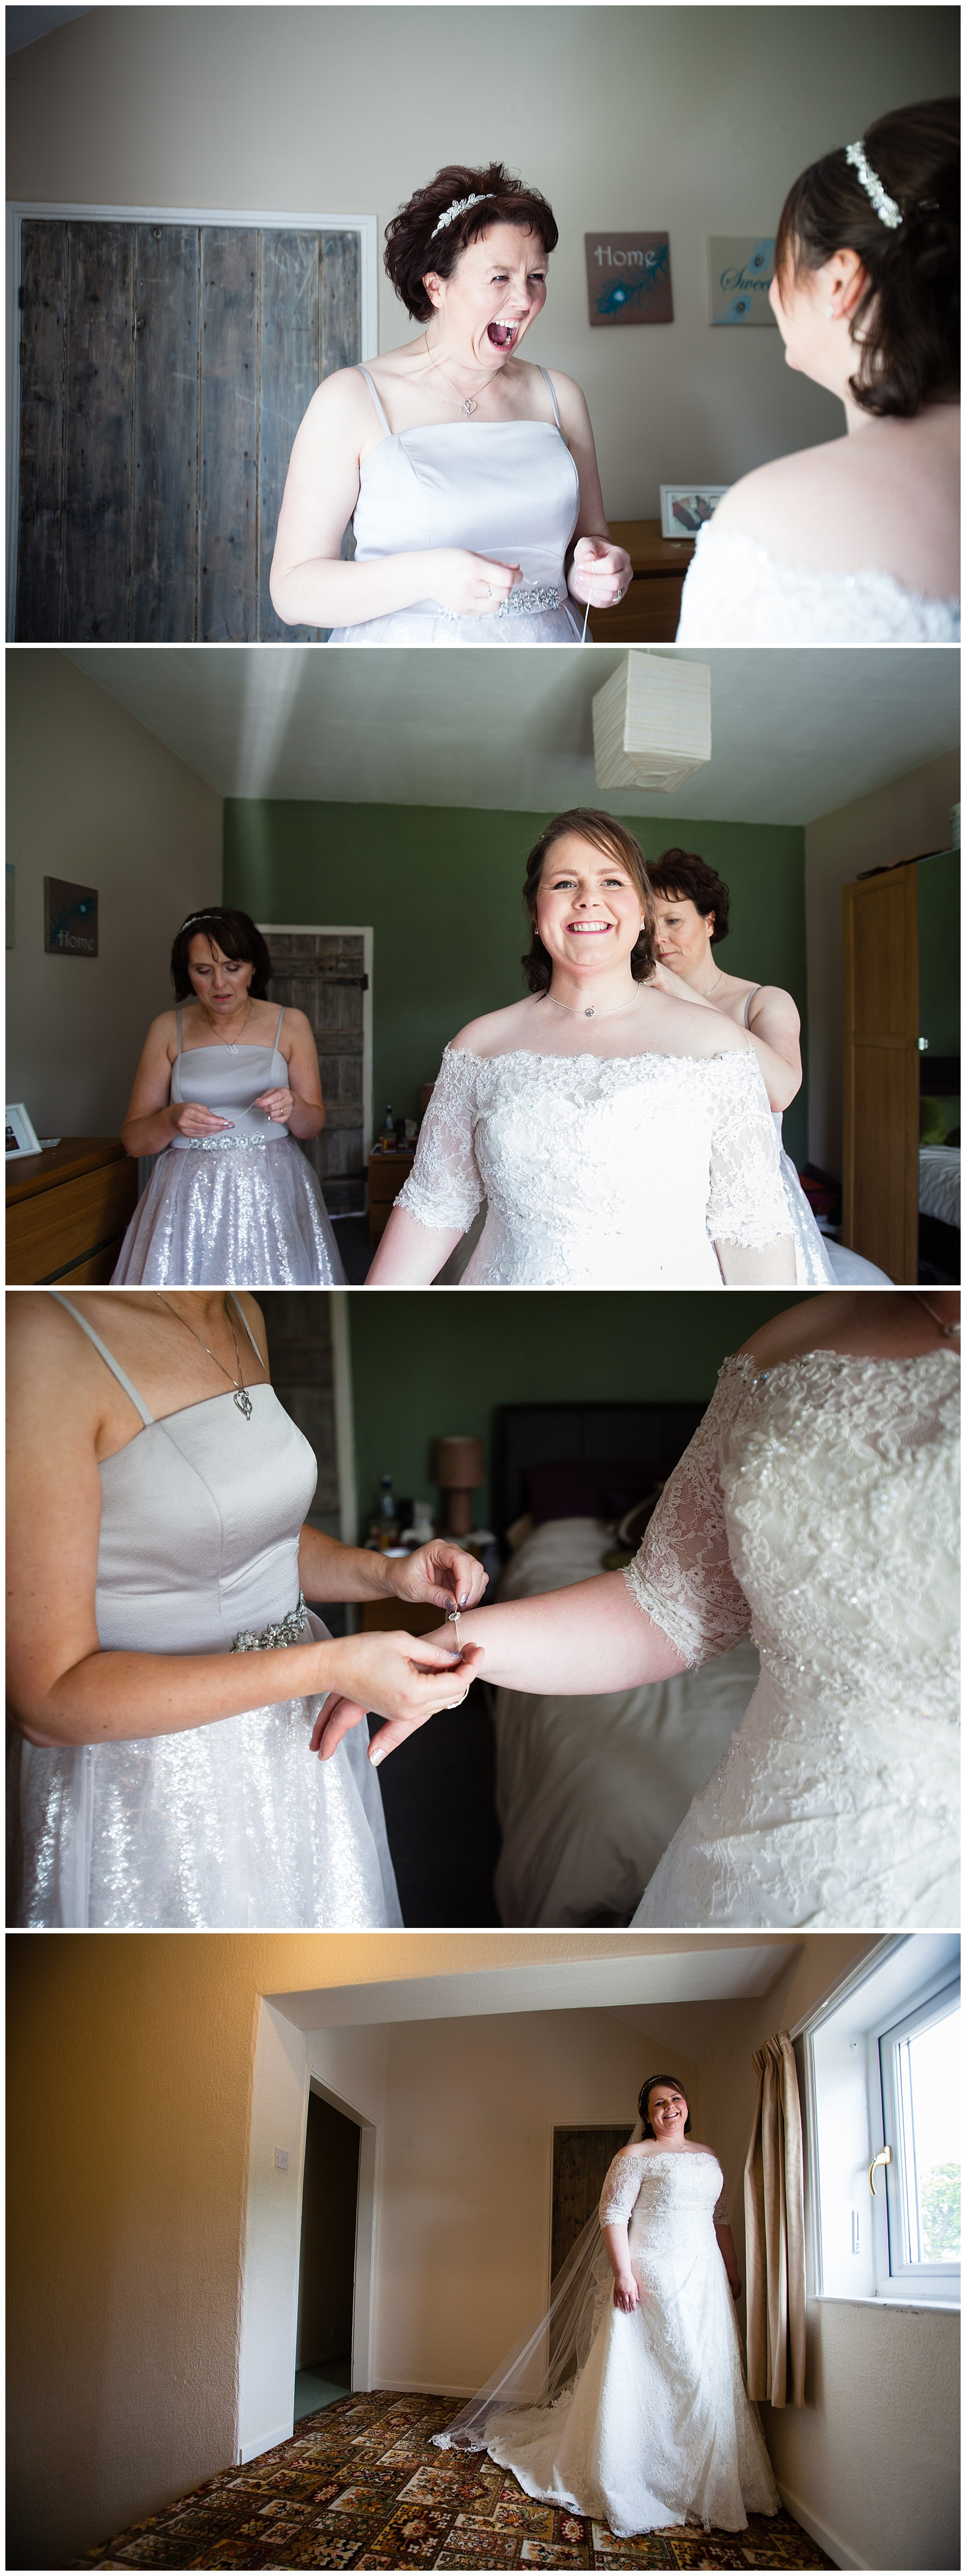 bridal preparations at home in summer, in shropshire - charlotte giddings photography